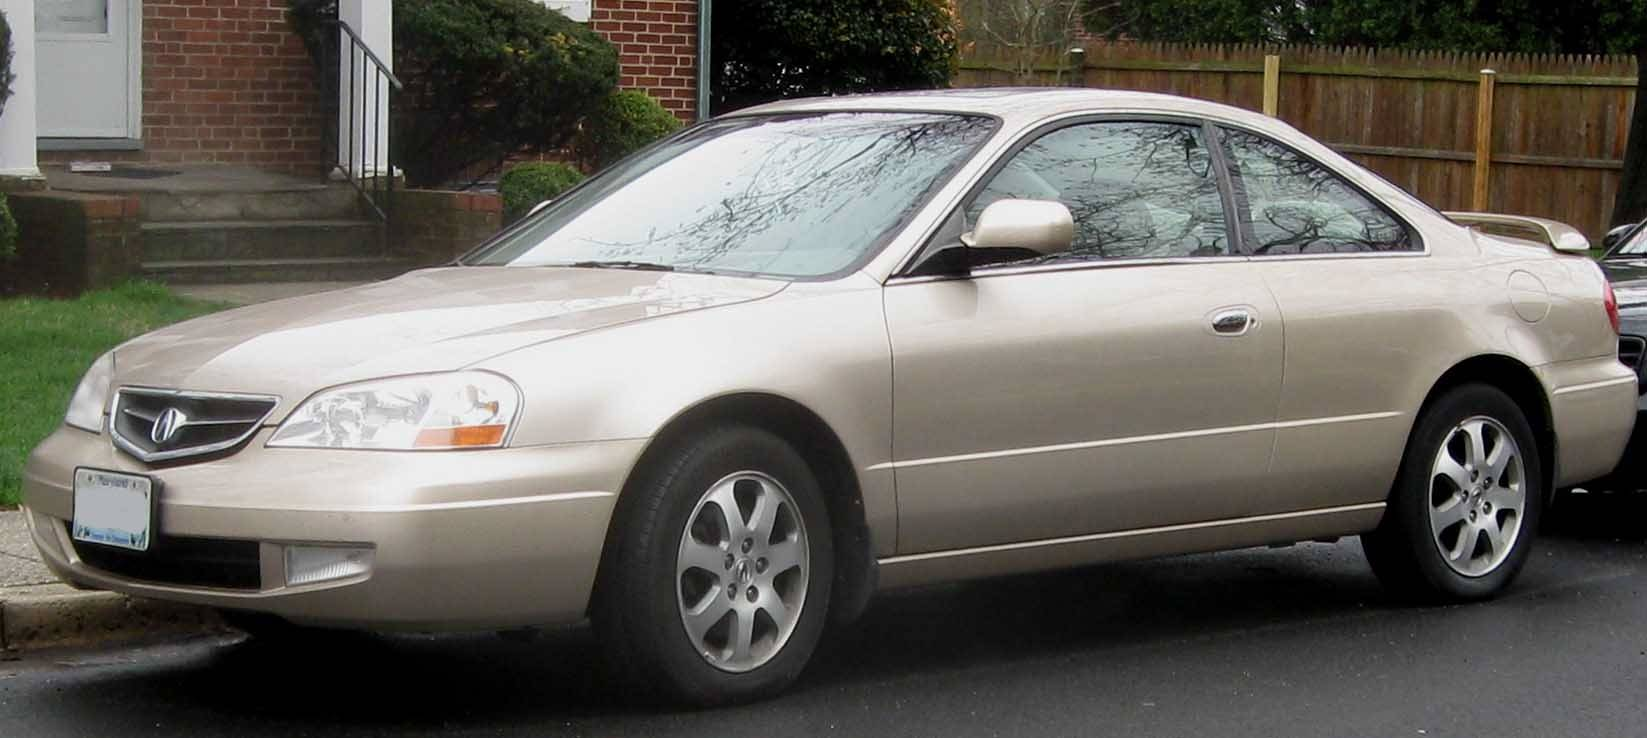 1999 Acura CL 30 Starting From 2509 23 City 29 Highway Mpg